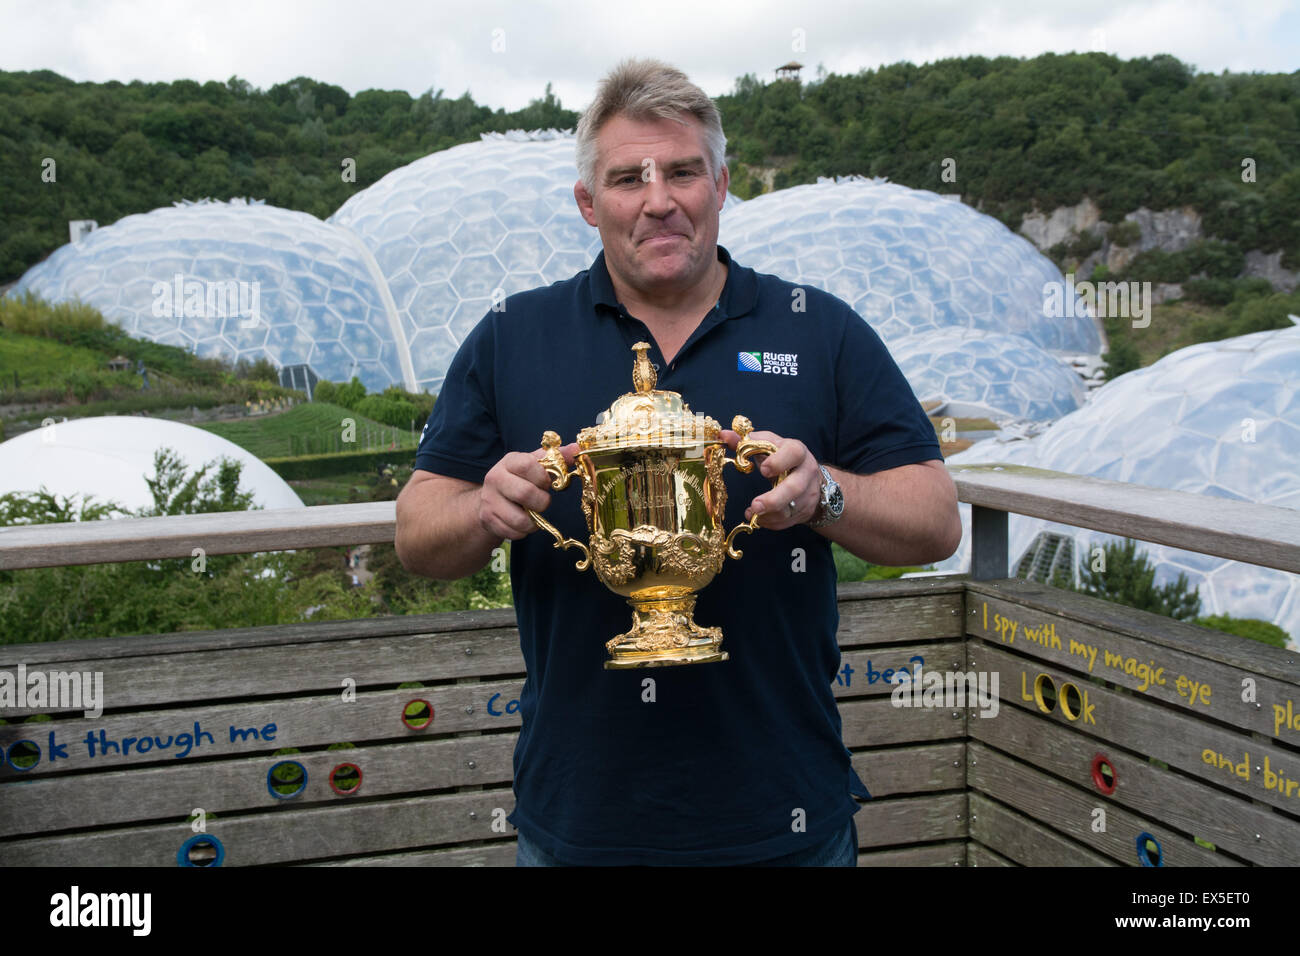 Picture of Jason Leonard , at the eden project with the Web Ellis trophy to launch the Rugby World Cup 2015 in england. Stock Photo